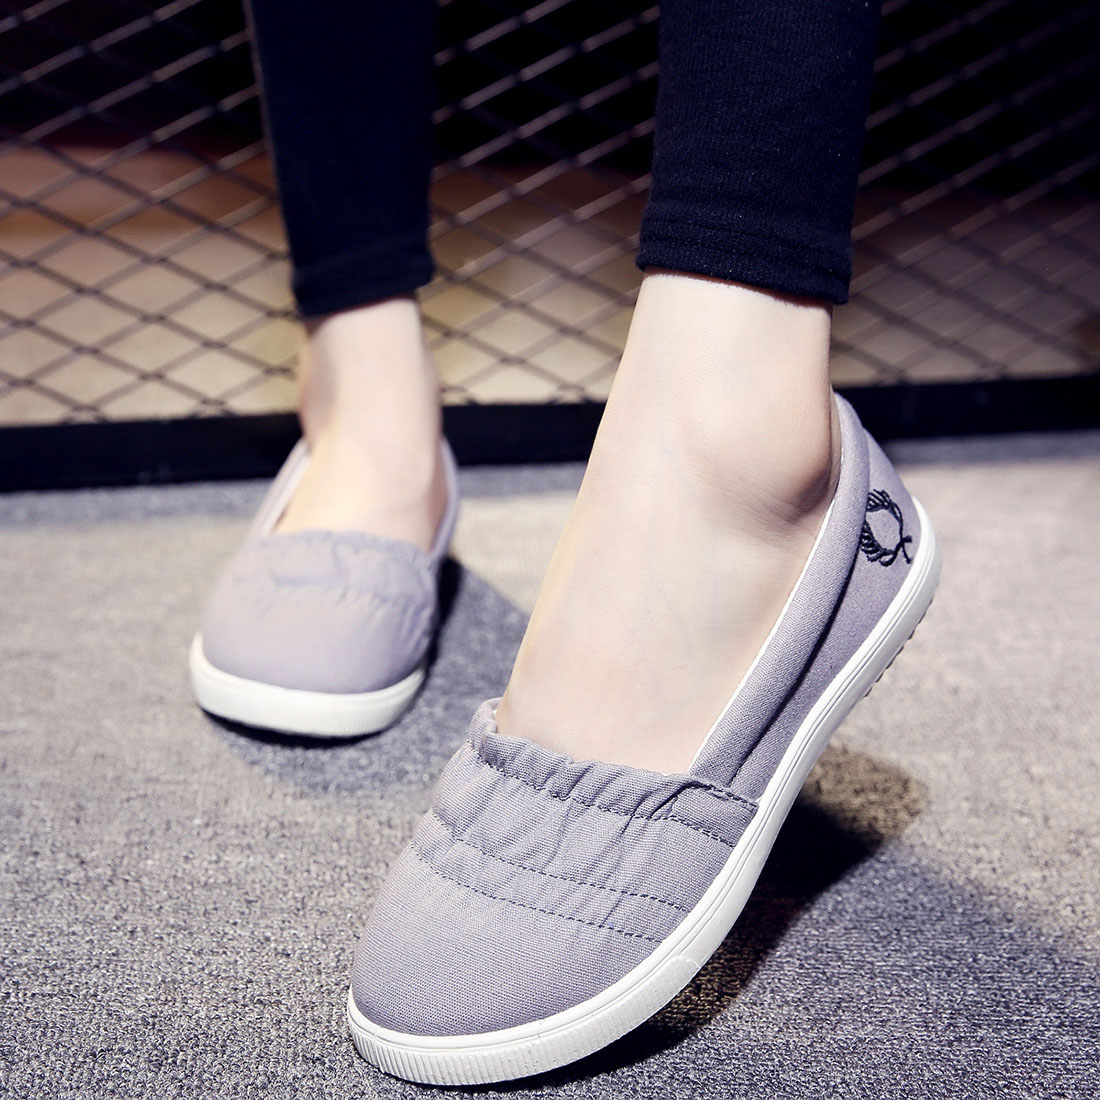 Hot Sale Fashion Women White Gray Canvas Shoes Concise Low Top Casual Flat Student Shoes Solid Soft Slip On Loafers hot sale 2016 top quality brand shoes for men fashion casual shoes teenagers flat walking shoes high top canvas shoes zatapos